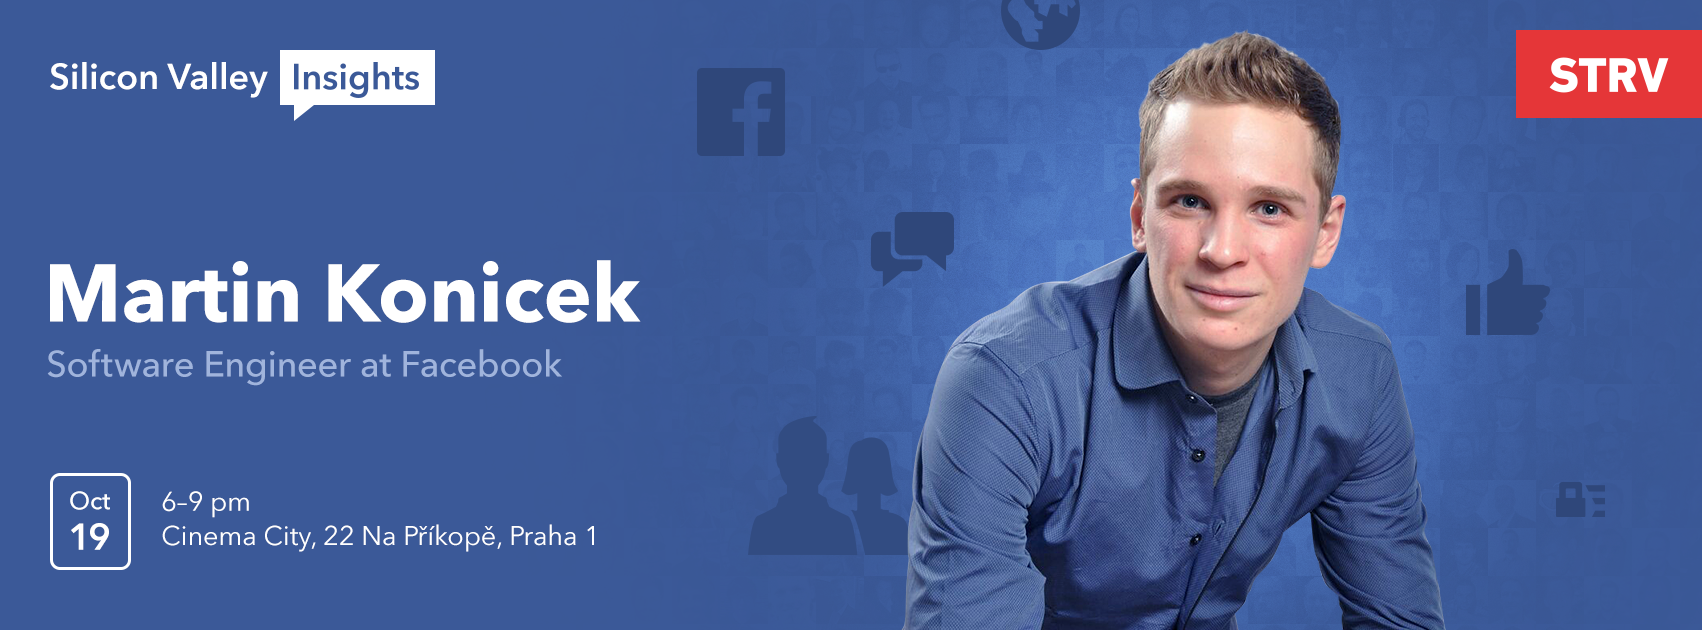 Silicon Valley Insights with Martin Konicek from Facebook